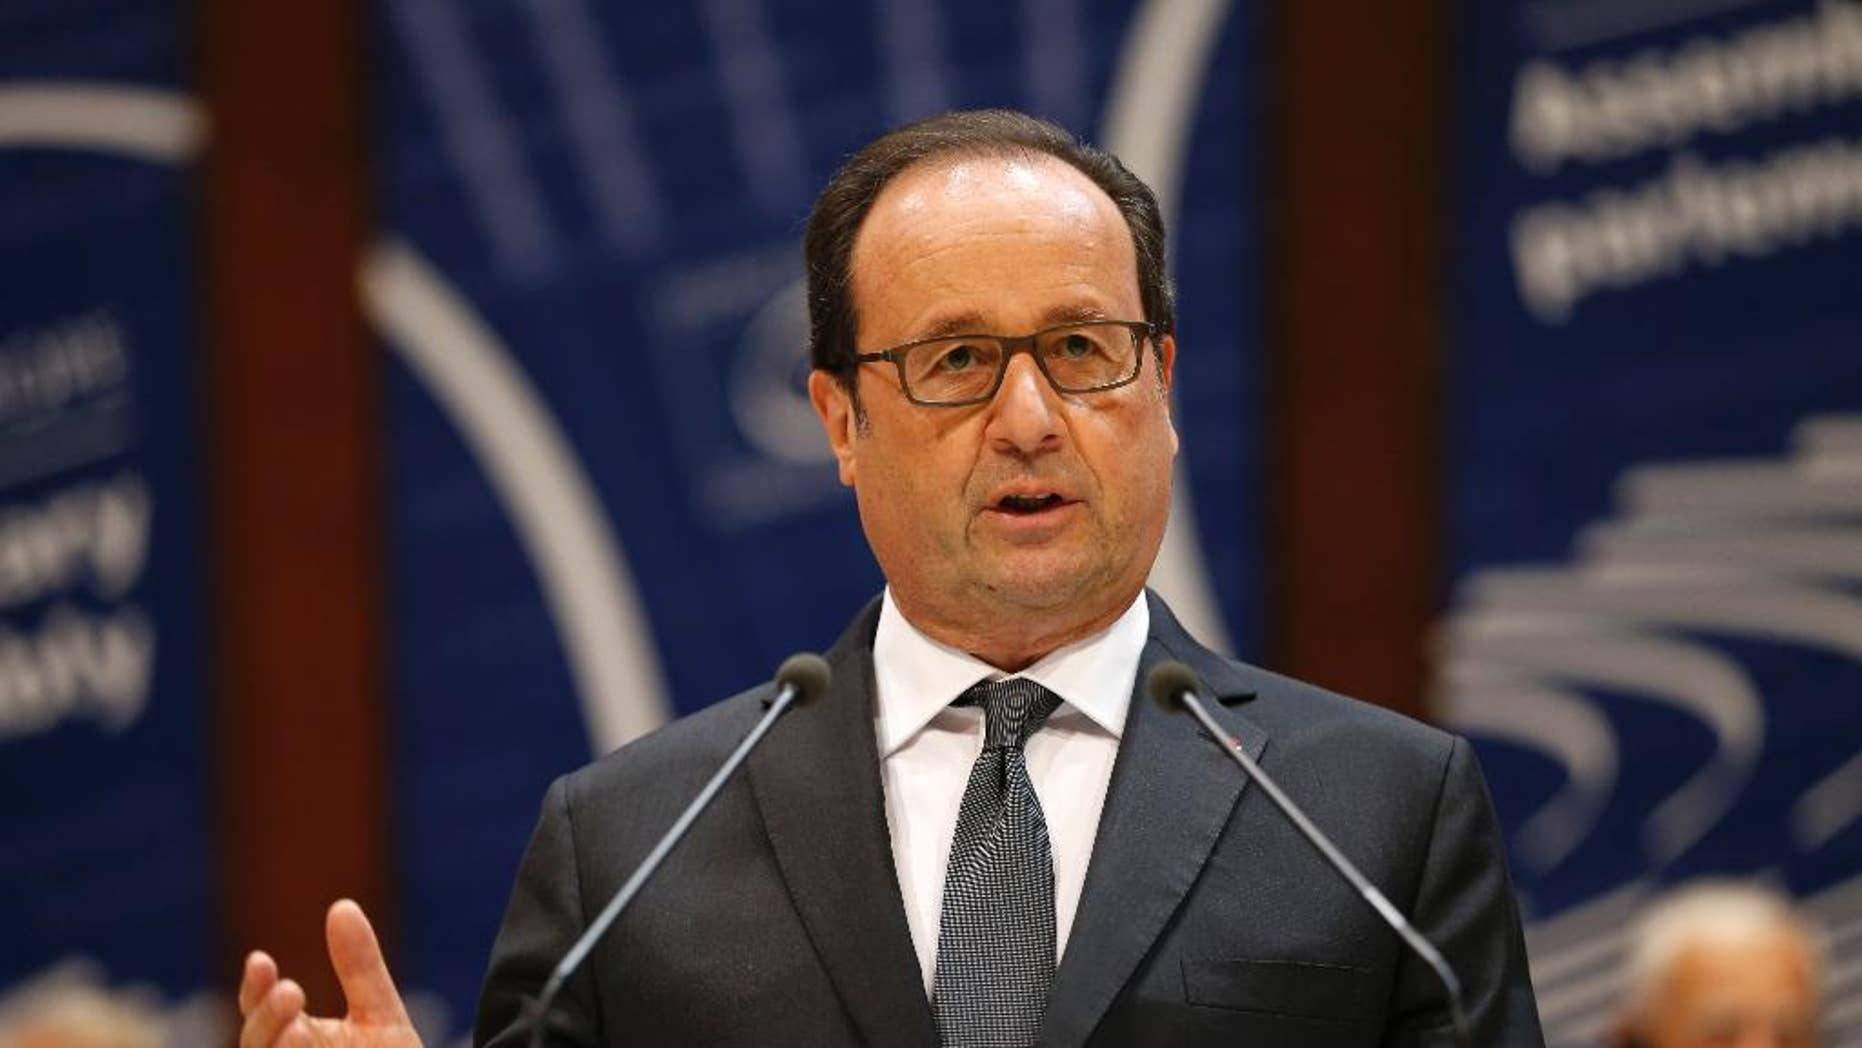 French President Francois Hollande  delivers his speech at the Council of Europe in Strasbourg, eastern France, Tuesday, Oct. 11, 2016. Russian President Vladimir Putin indefinitely postponed a visit to France amid differences over its program, the Kremlin said Tuesday, a move that comes amid a bitter rift over Syria. (AP Photo/Jean-Francois Badias)